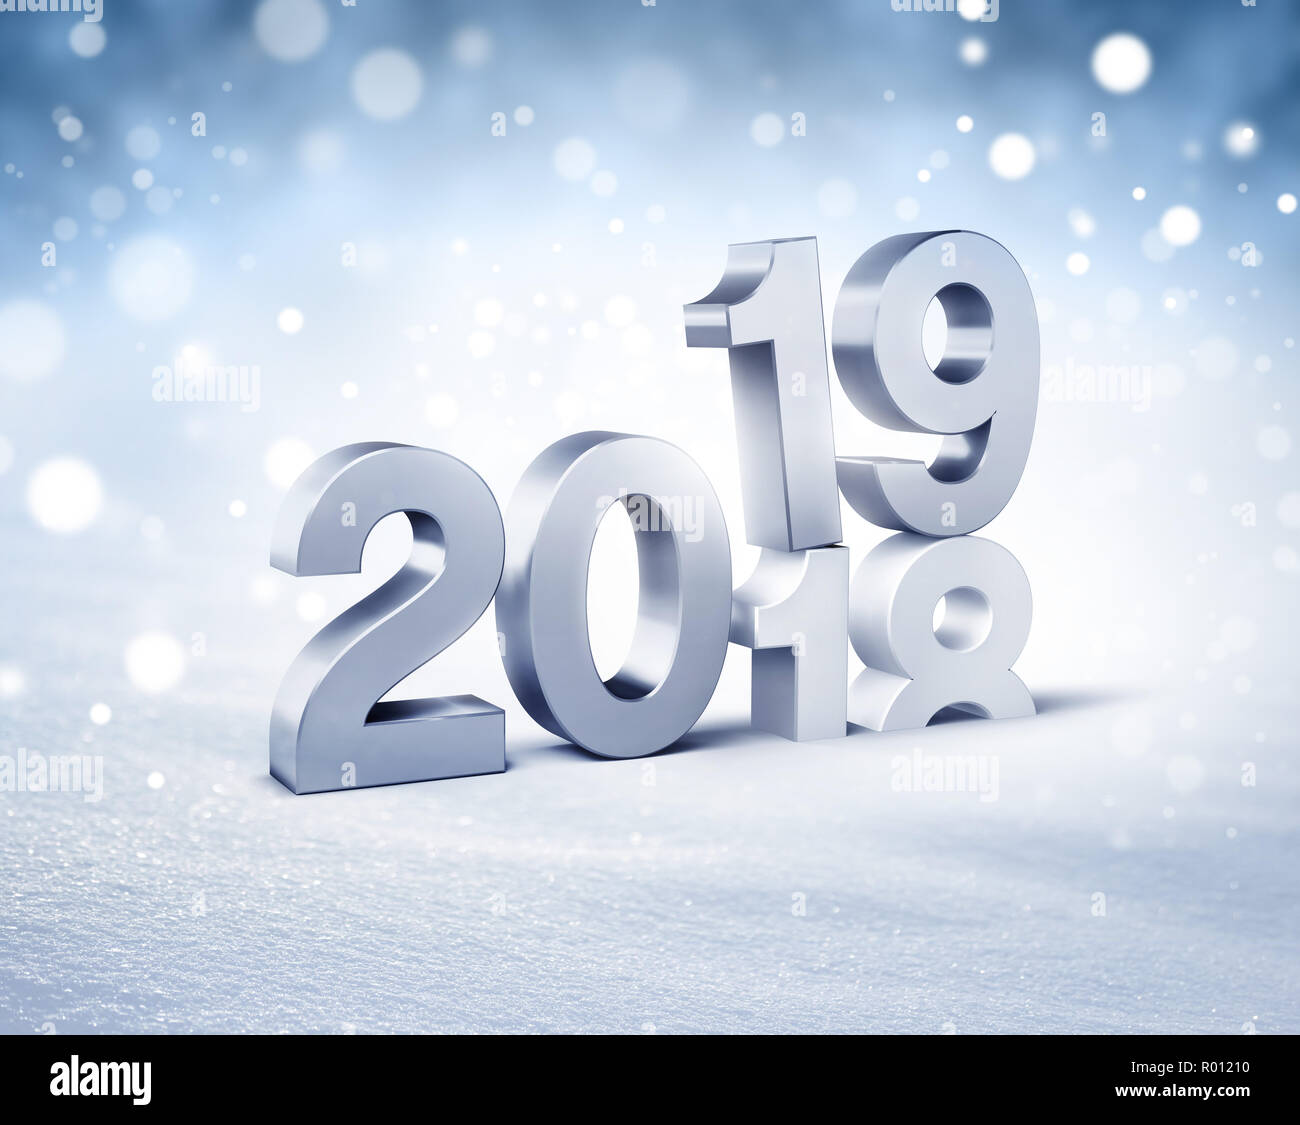 silver new year date 2019 above 2018 on a winter snow background 3d illustration